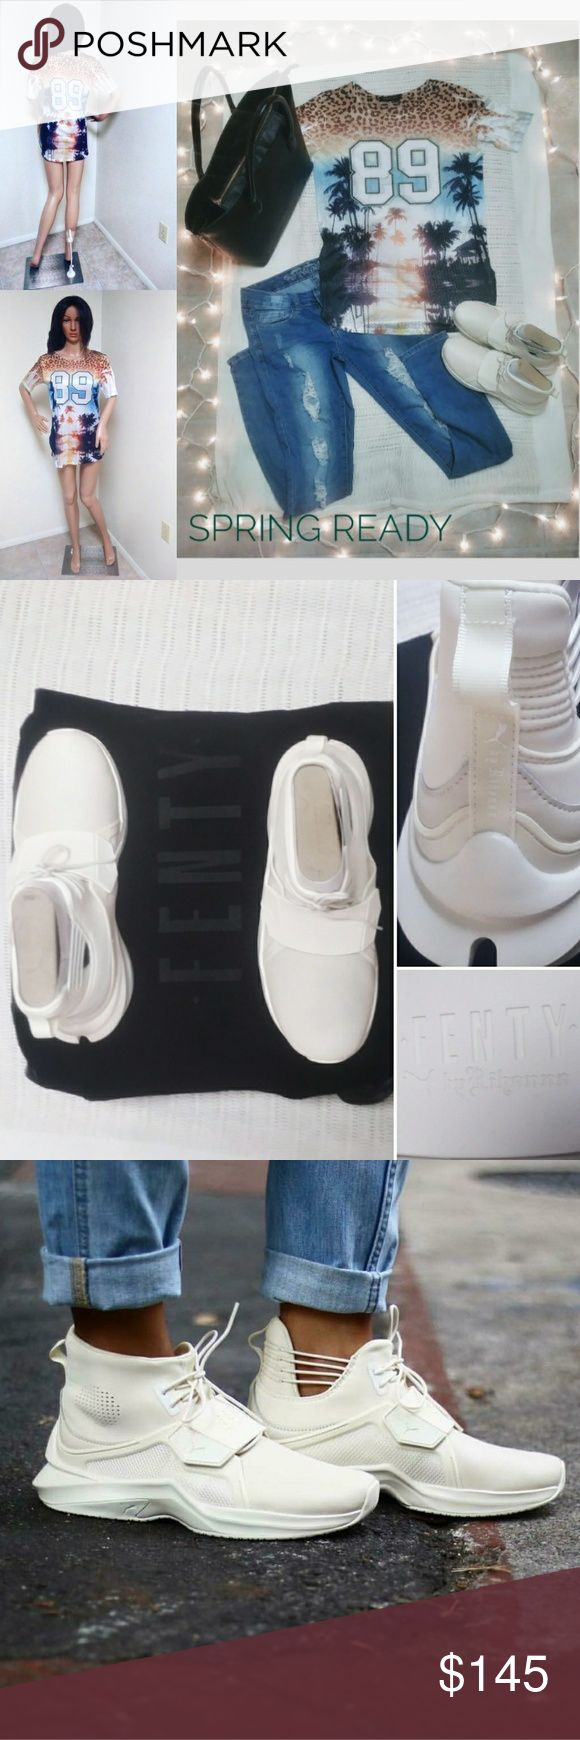 PUMA FENTY TRAINER WHITE HI WOMEN'S SNEAKERS 🌻AUTHENTIC / BRAND NEW 🌻ORIGINAL BOX & FENTY BAG 🌻NEVER WORN / CLEAN 🌻PLEASE KNOW YOUR SIZE 🚫 🌻SIZE 8 ( CAN FIT SIZE 7.5 FOR SPACE) 🌻OFFERS ACCEPTED   🌻WHISPER WHITE ( OFF WHITE) 🌻Rihanna's FENTY BRAND 🌻UNIQUE & FASHION FOWARD LOOK 🌻NOT TOO SMALL / NOT TOO LARGE 🌻NOT TOO NARROW / NOT TOO WIDE 🌻WELL BUILT SNEAKER Puma Shoes Sneakers